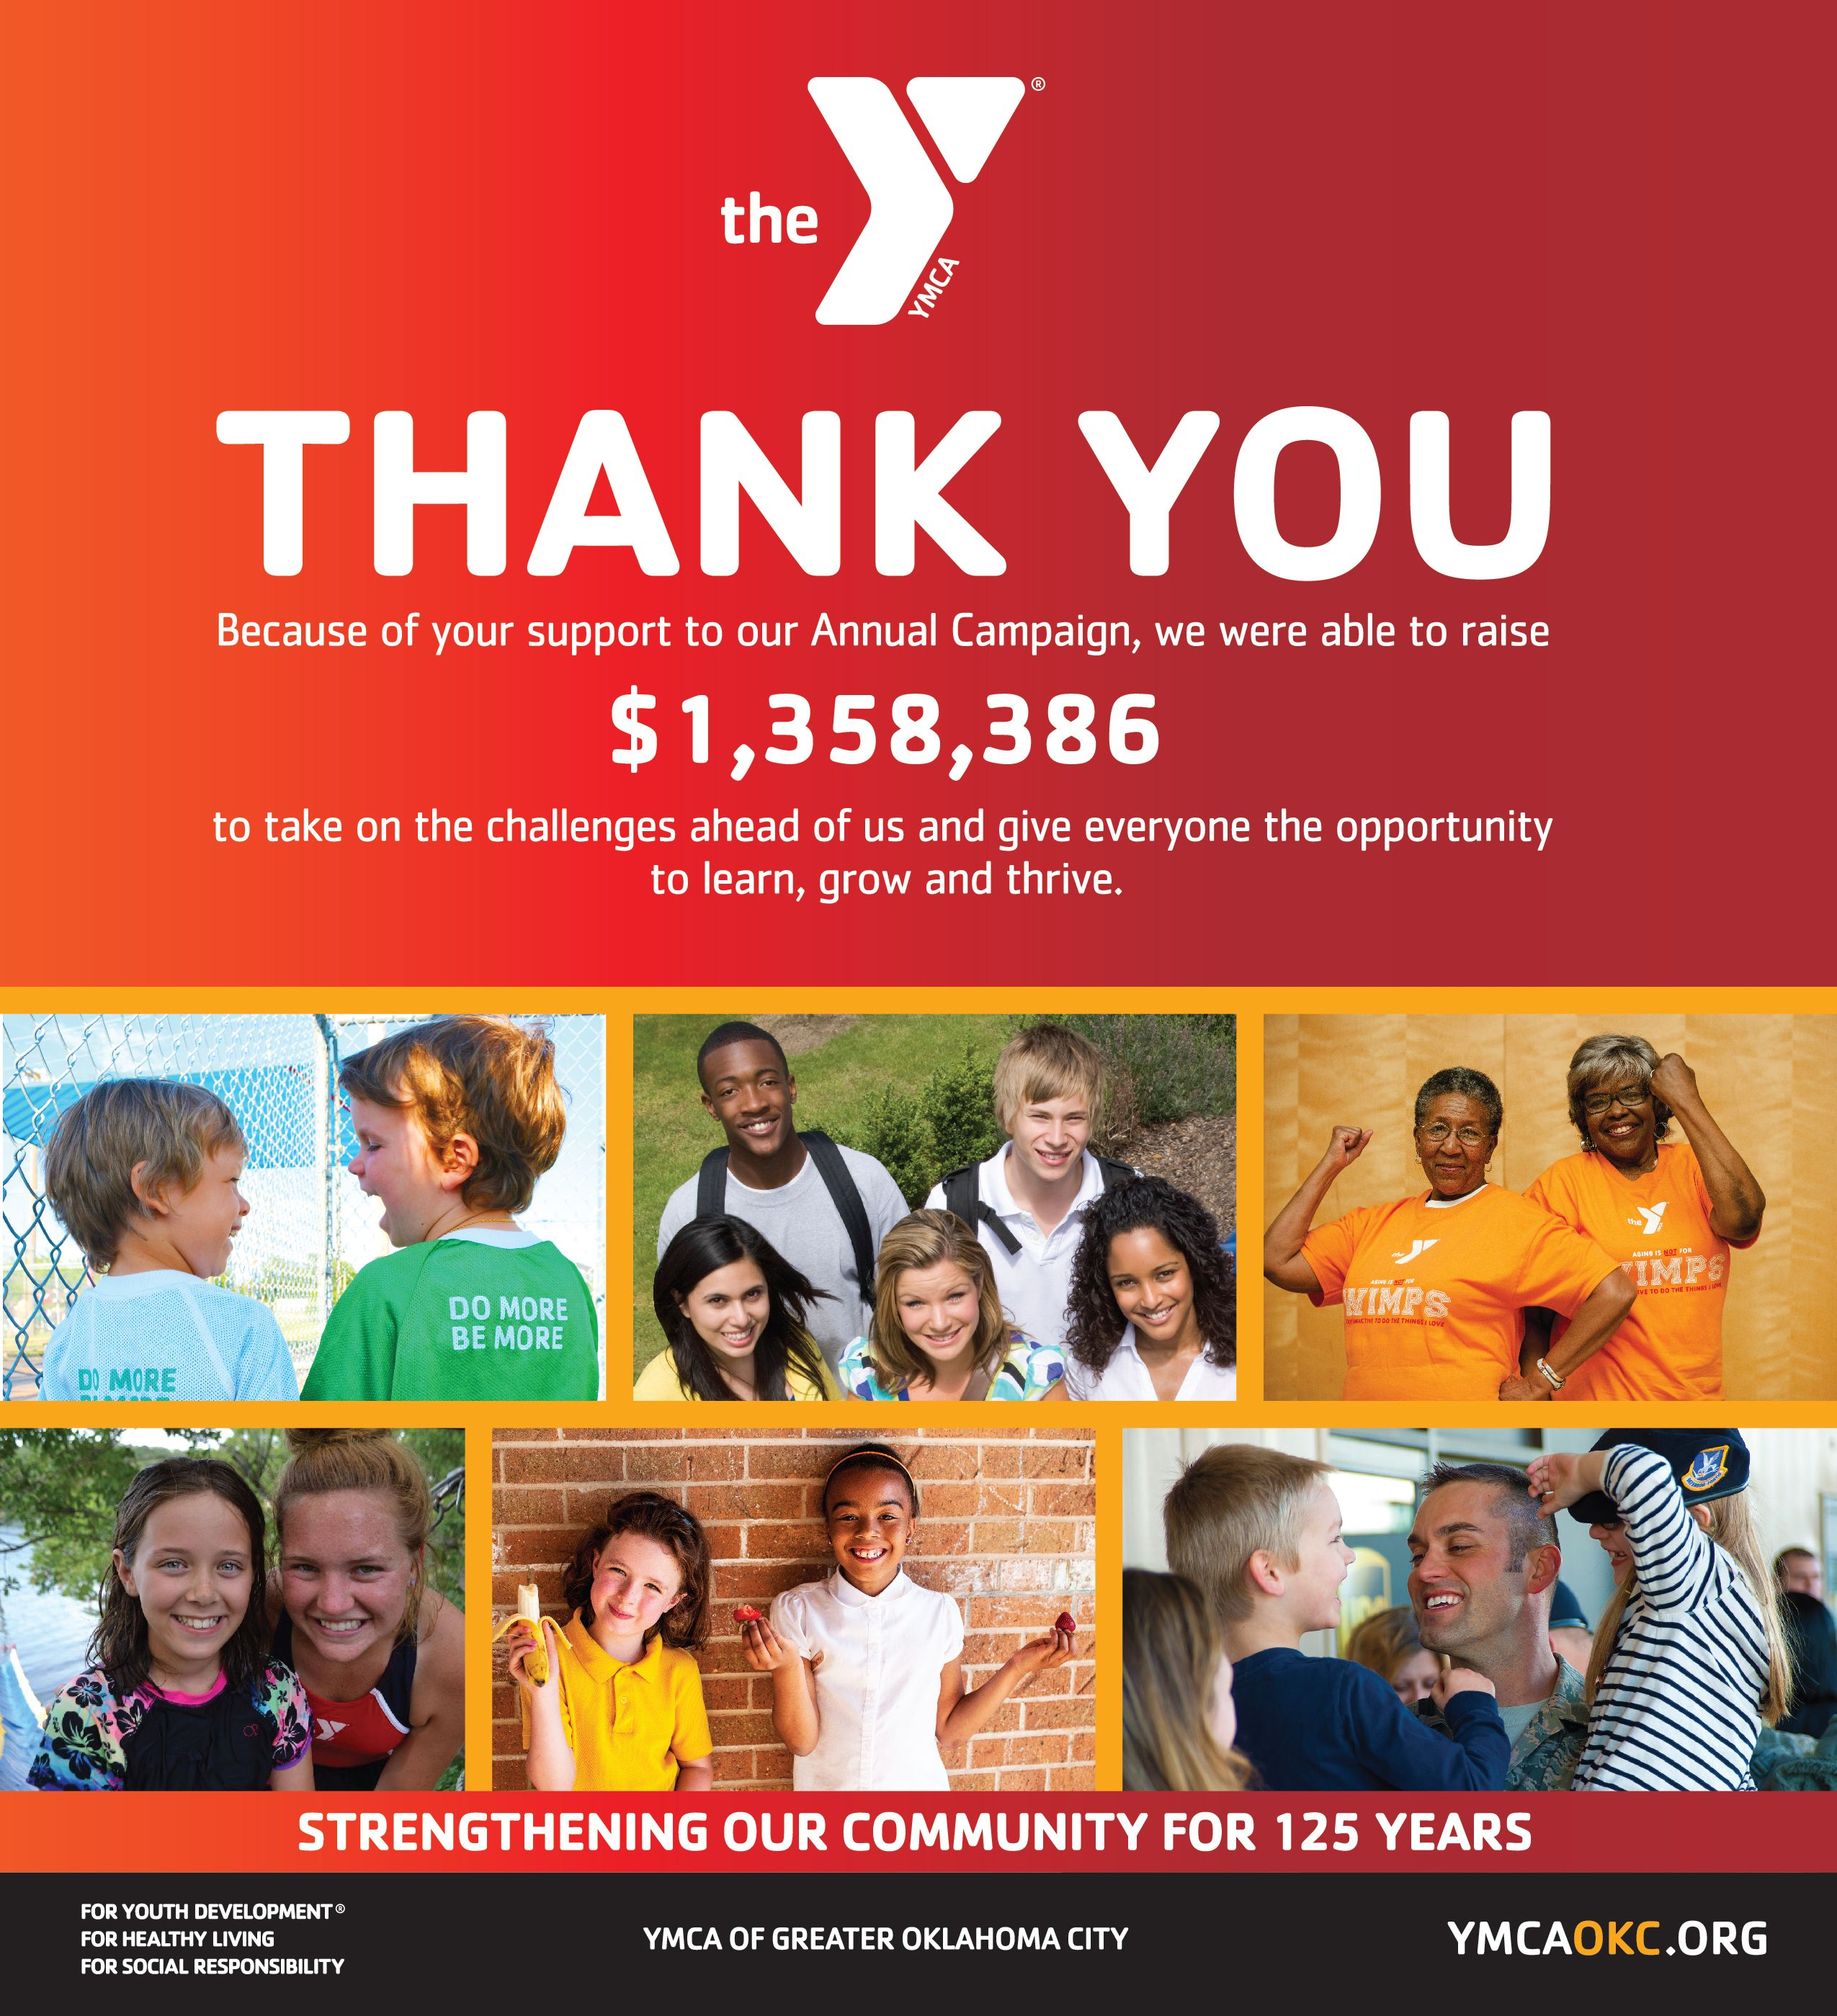 By giving to the ys annual campaign you help ensure that